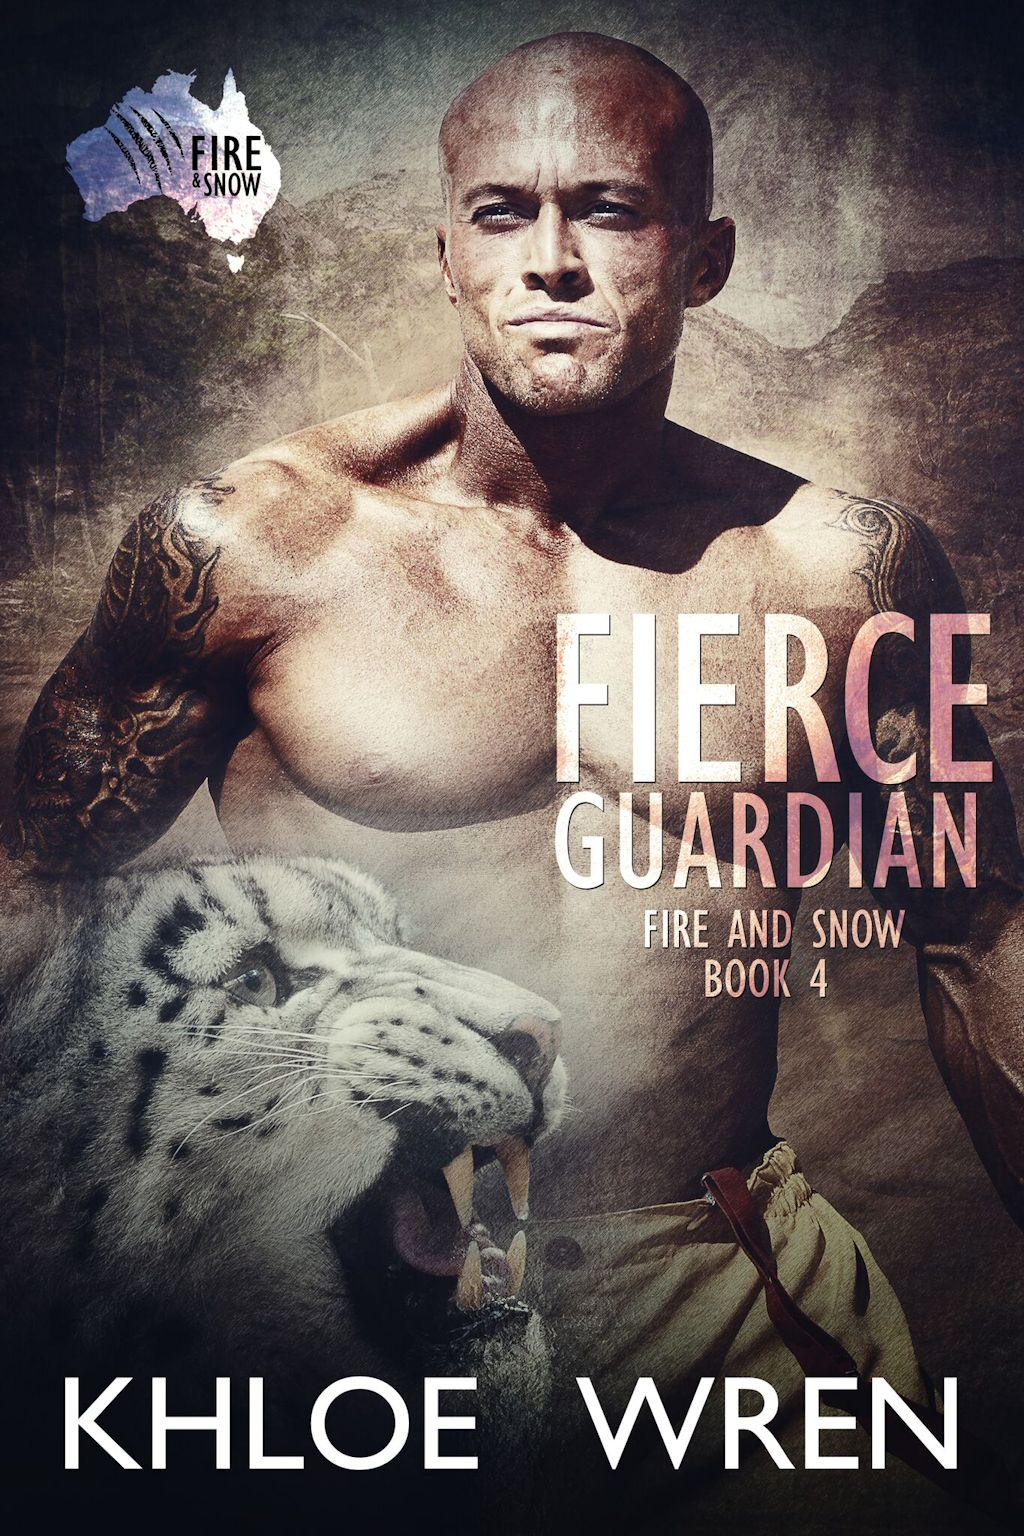 Tattooed Romance Cover Model John Joseph Quinlan Fierce Guardian Book IV Fire & Snow Series by Khloe Wren #JohnQuinlan